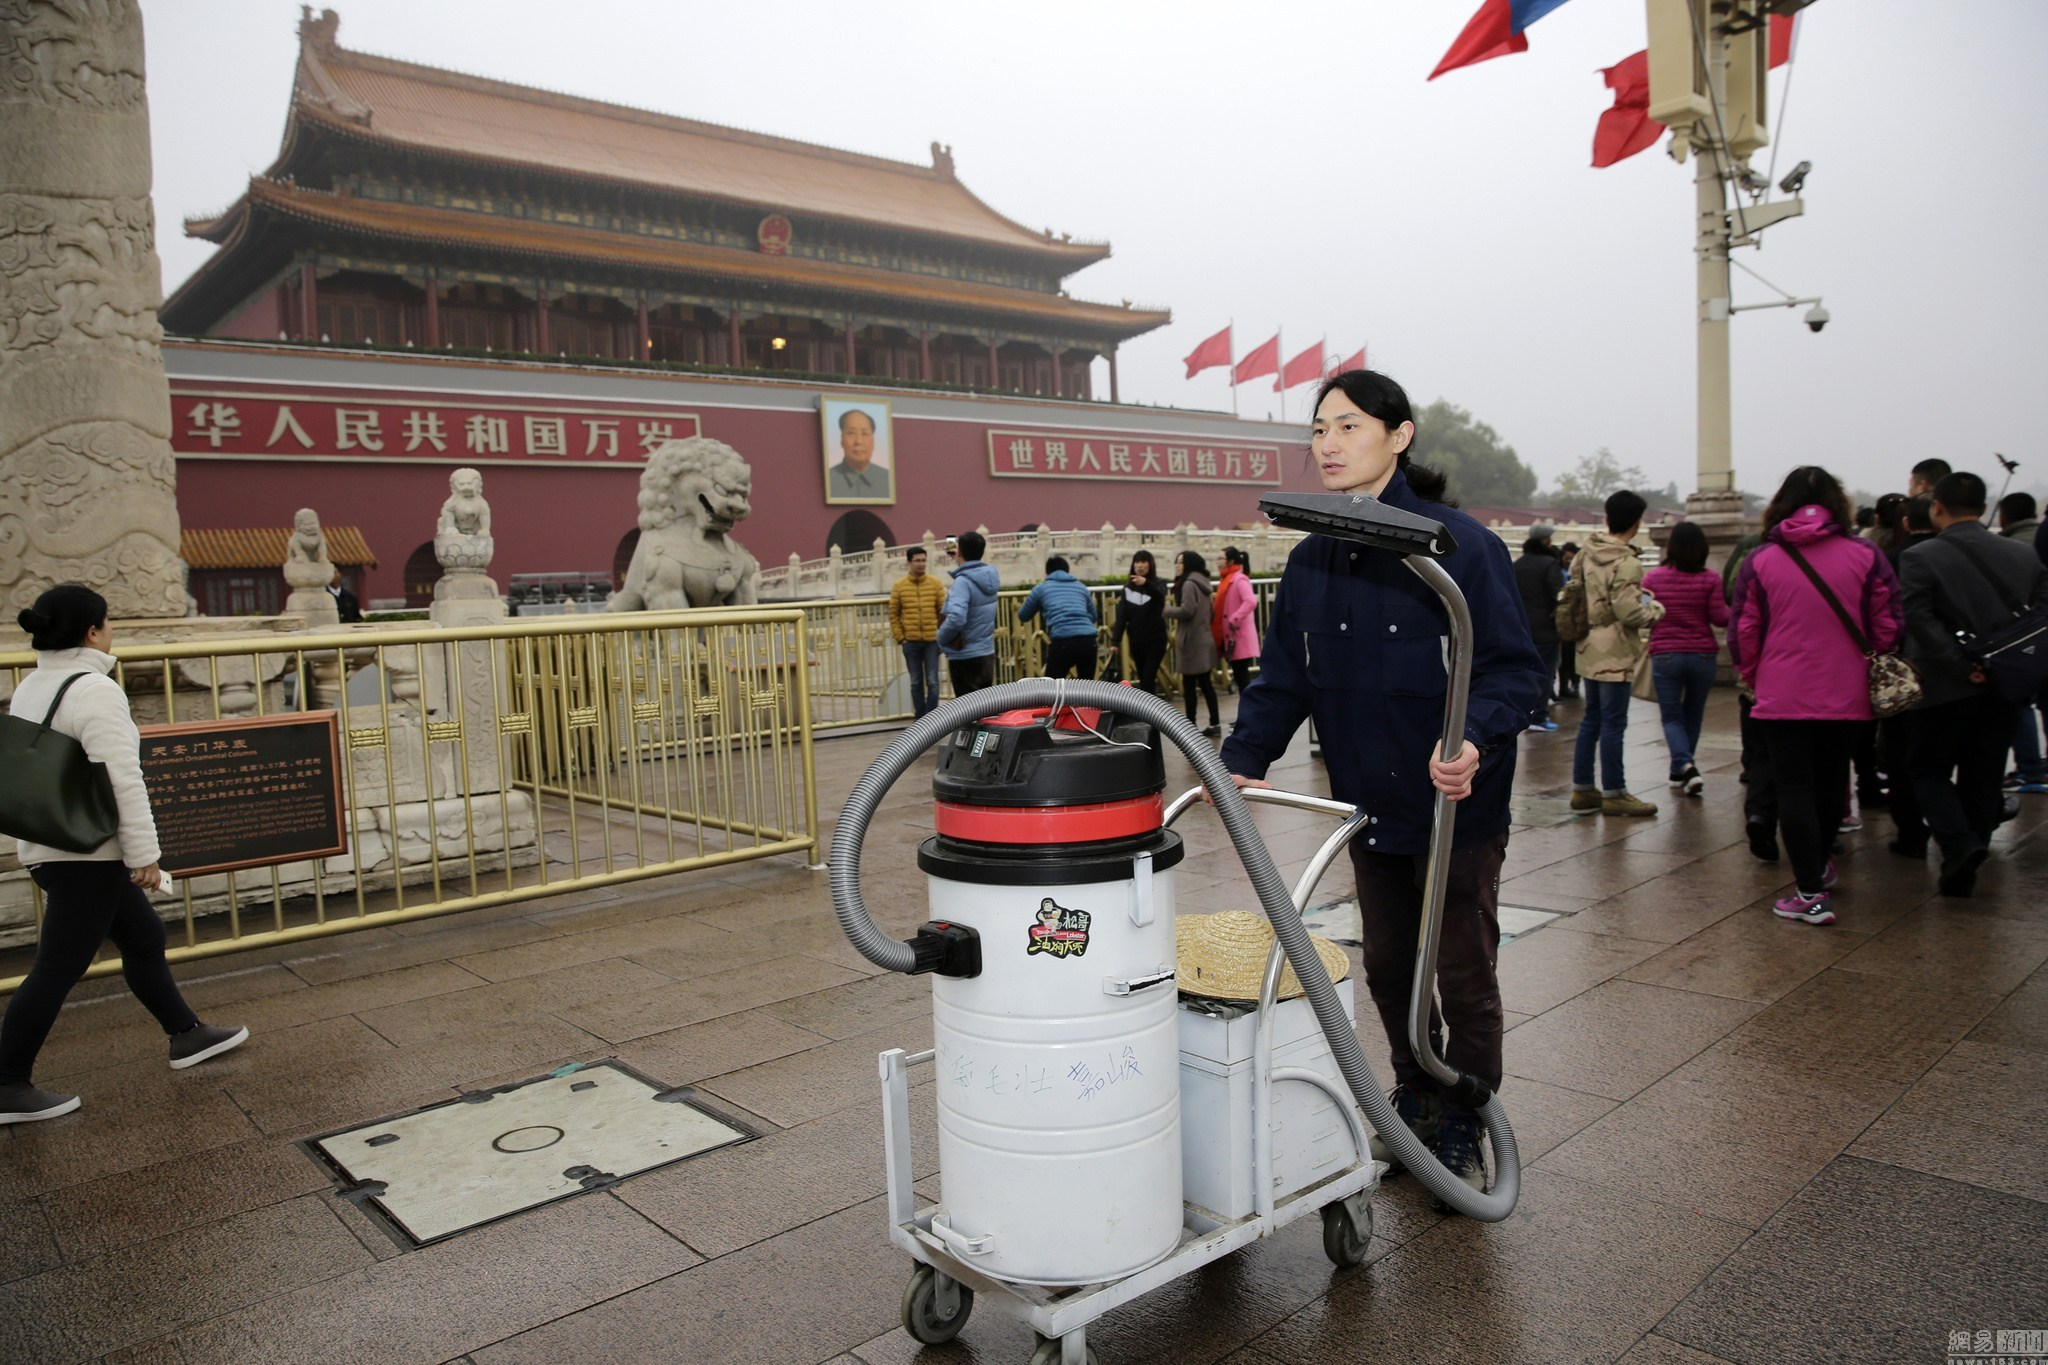 100-Day Performance Art Piece: Dust Vacuumed From tiananmen square